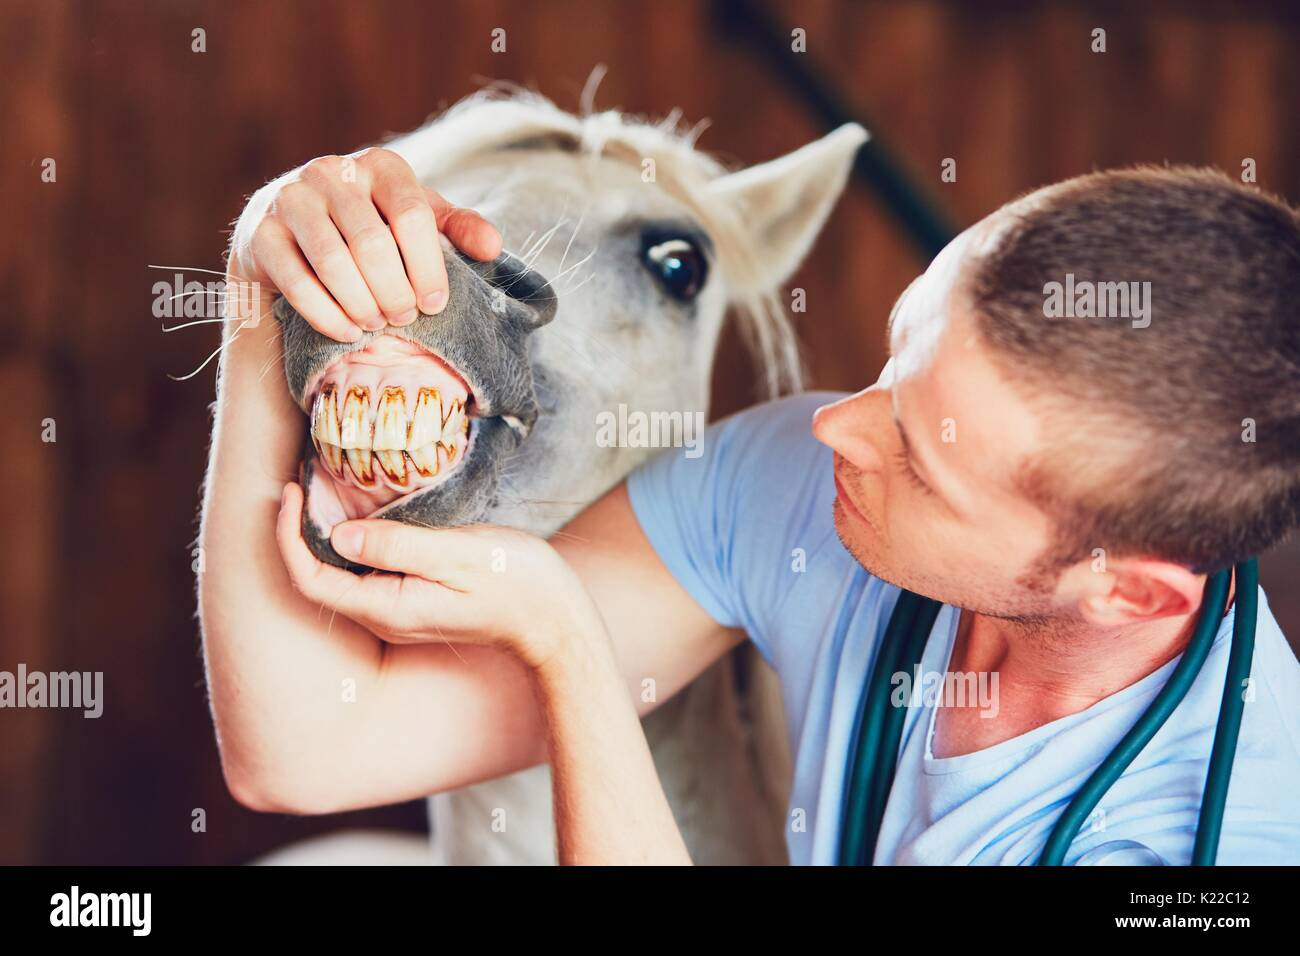 Veterinary medicine at farm. Veterinarian examining teeth of the horse in the stable. - Stock Image